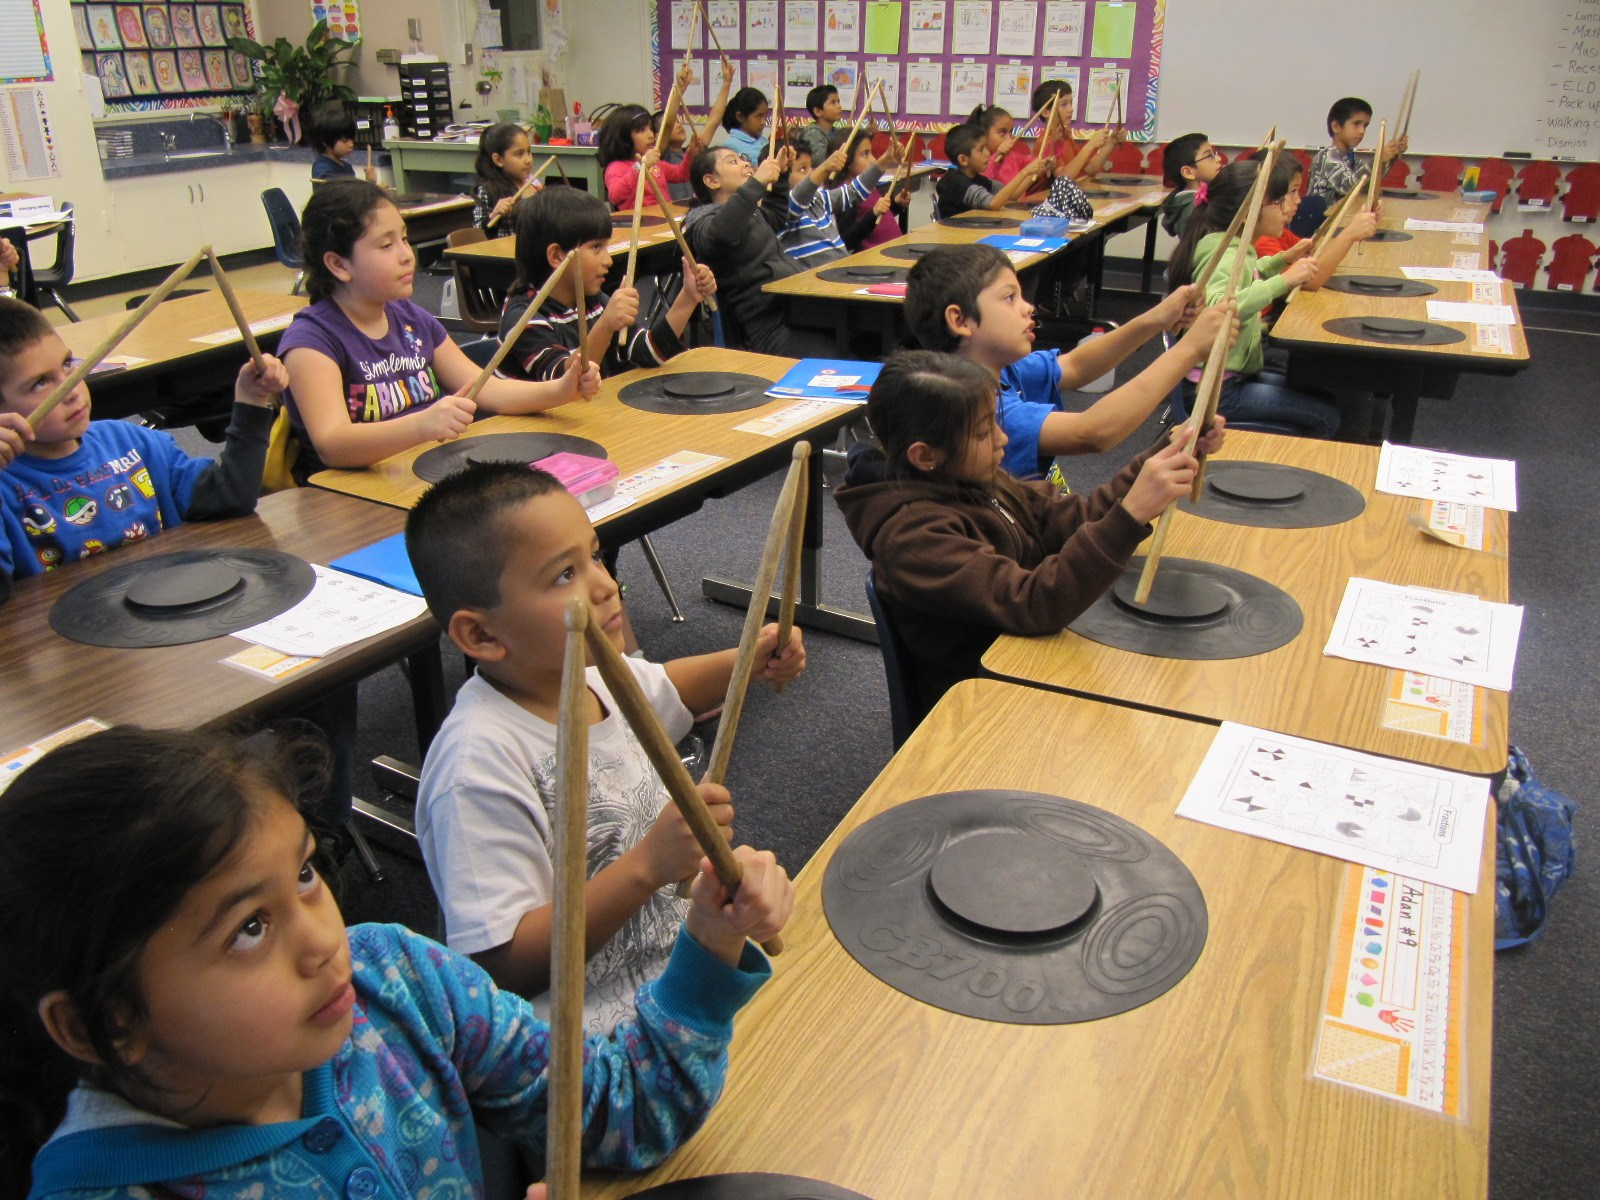 Students playing a drum pad with drum sticks in a classroom.